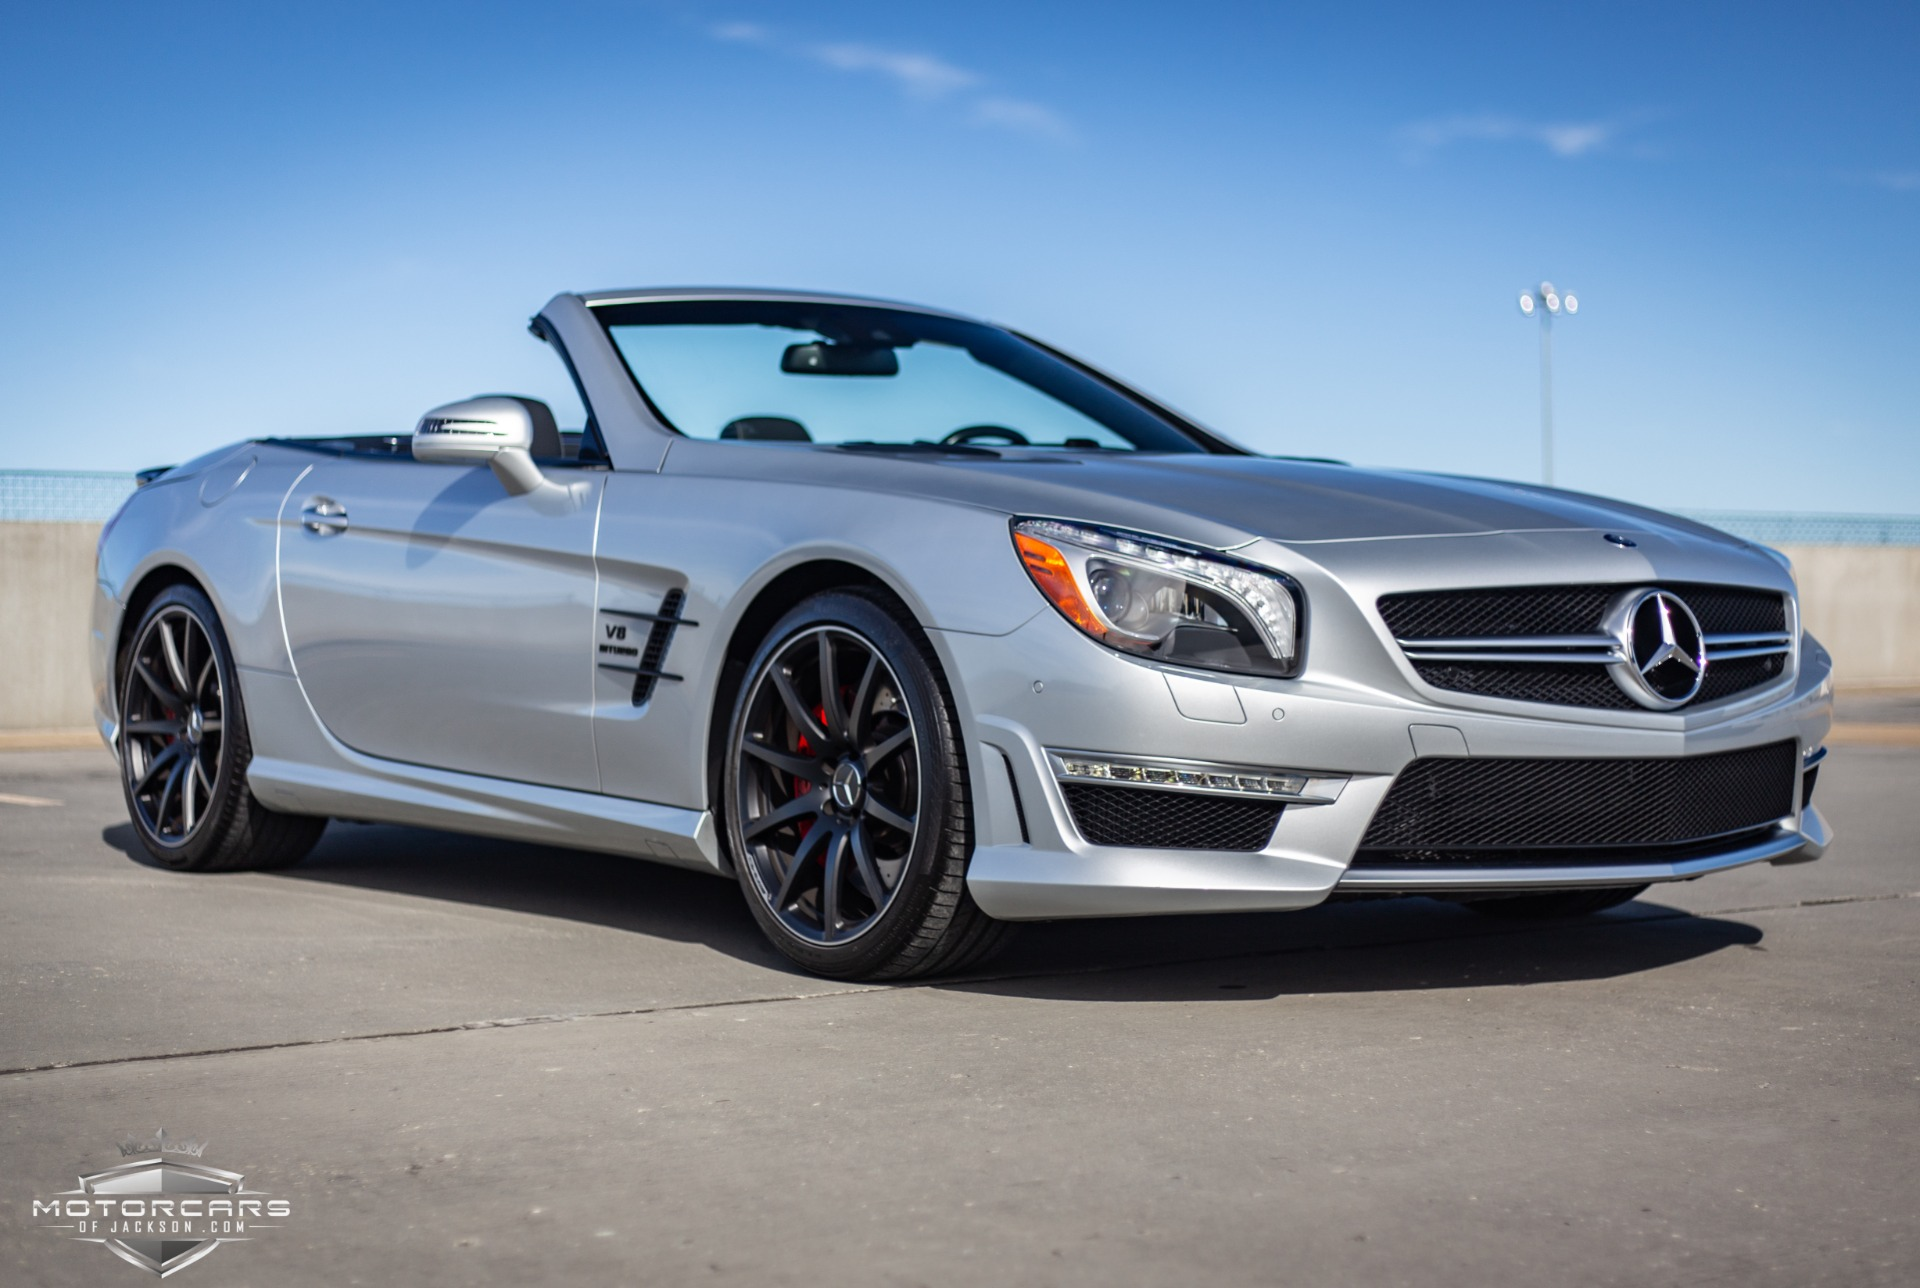 Used-2014-Mercedes-Benz-SL-Class-SL-63-AMG-for-sale-Jackson-MS